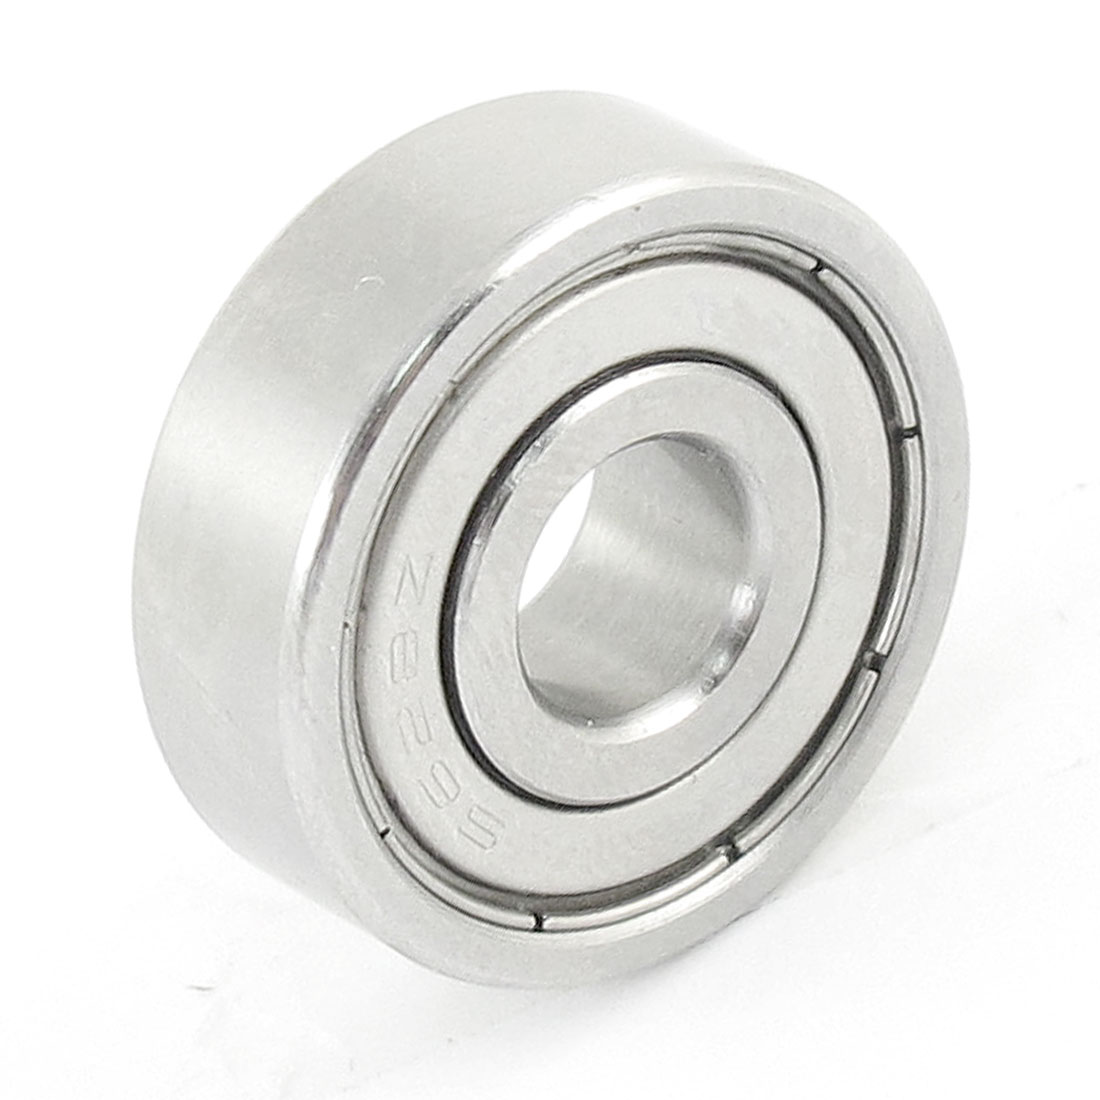 Stainless Steel 24mm x 8mm x 8mm Sealed Deep Groove Ball Bearing